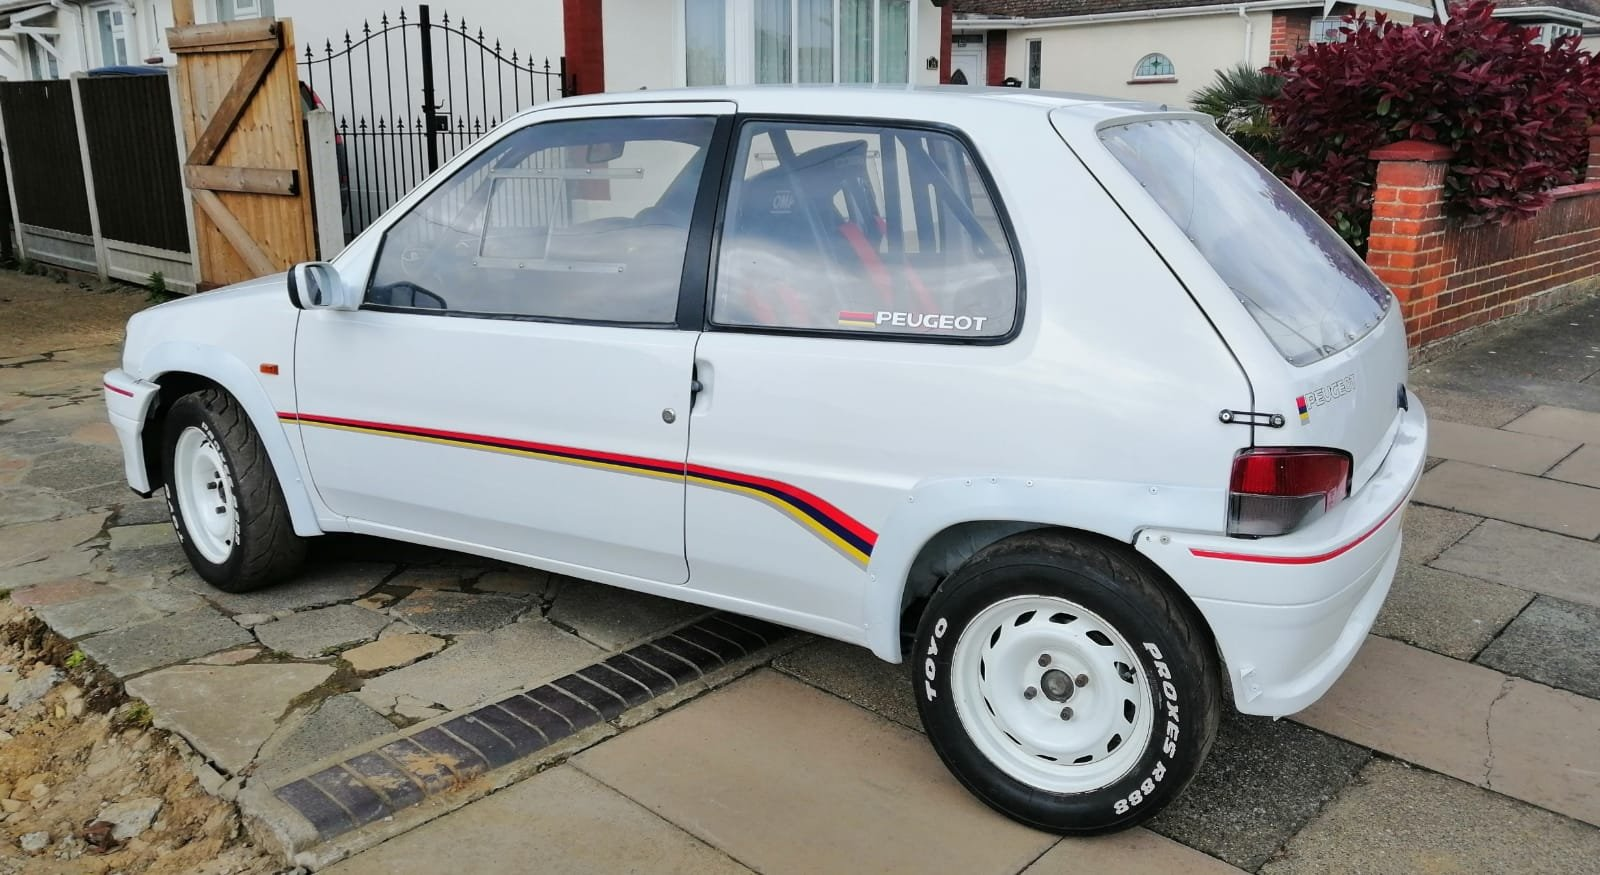 1994 Peugeot S1 Rallye Rally/Rallycross/Race/Track/Road For Sale (picture 6 of 6)